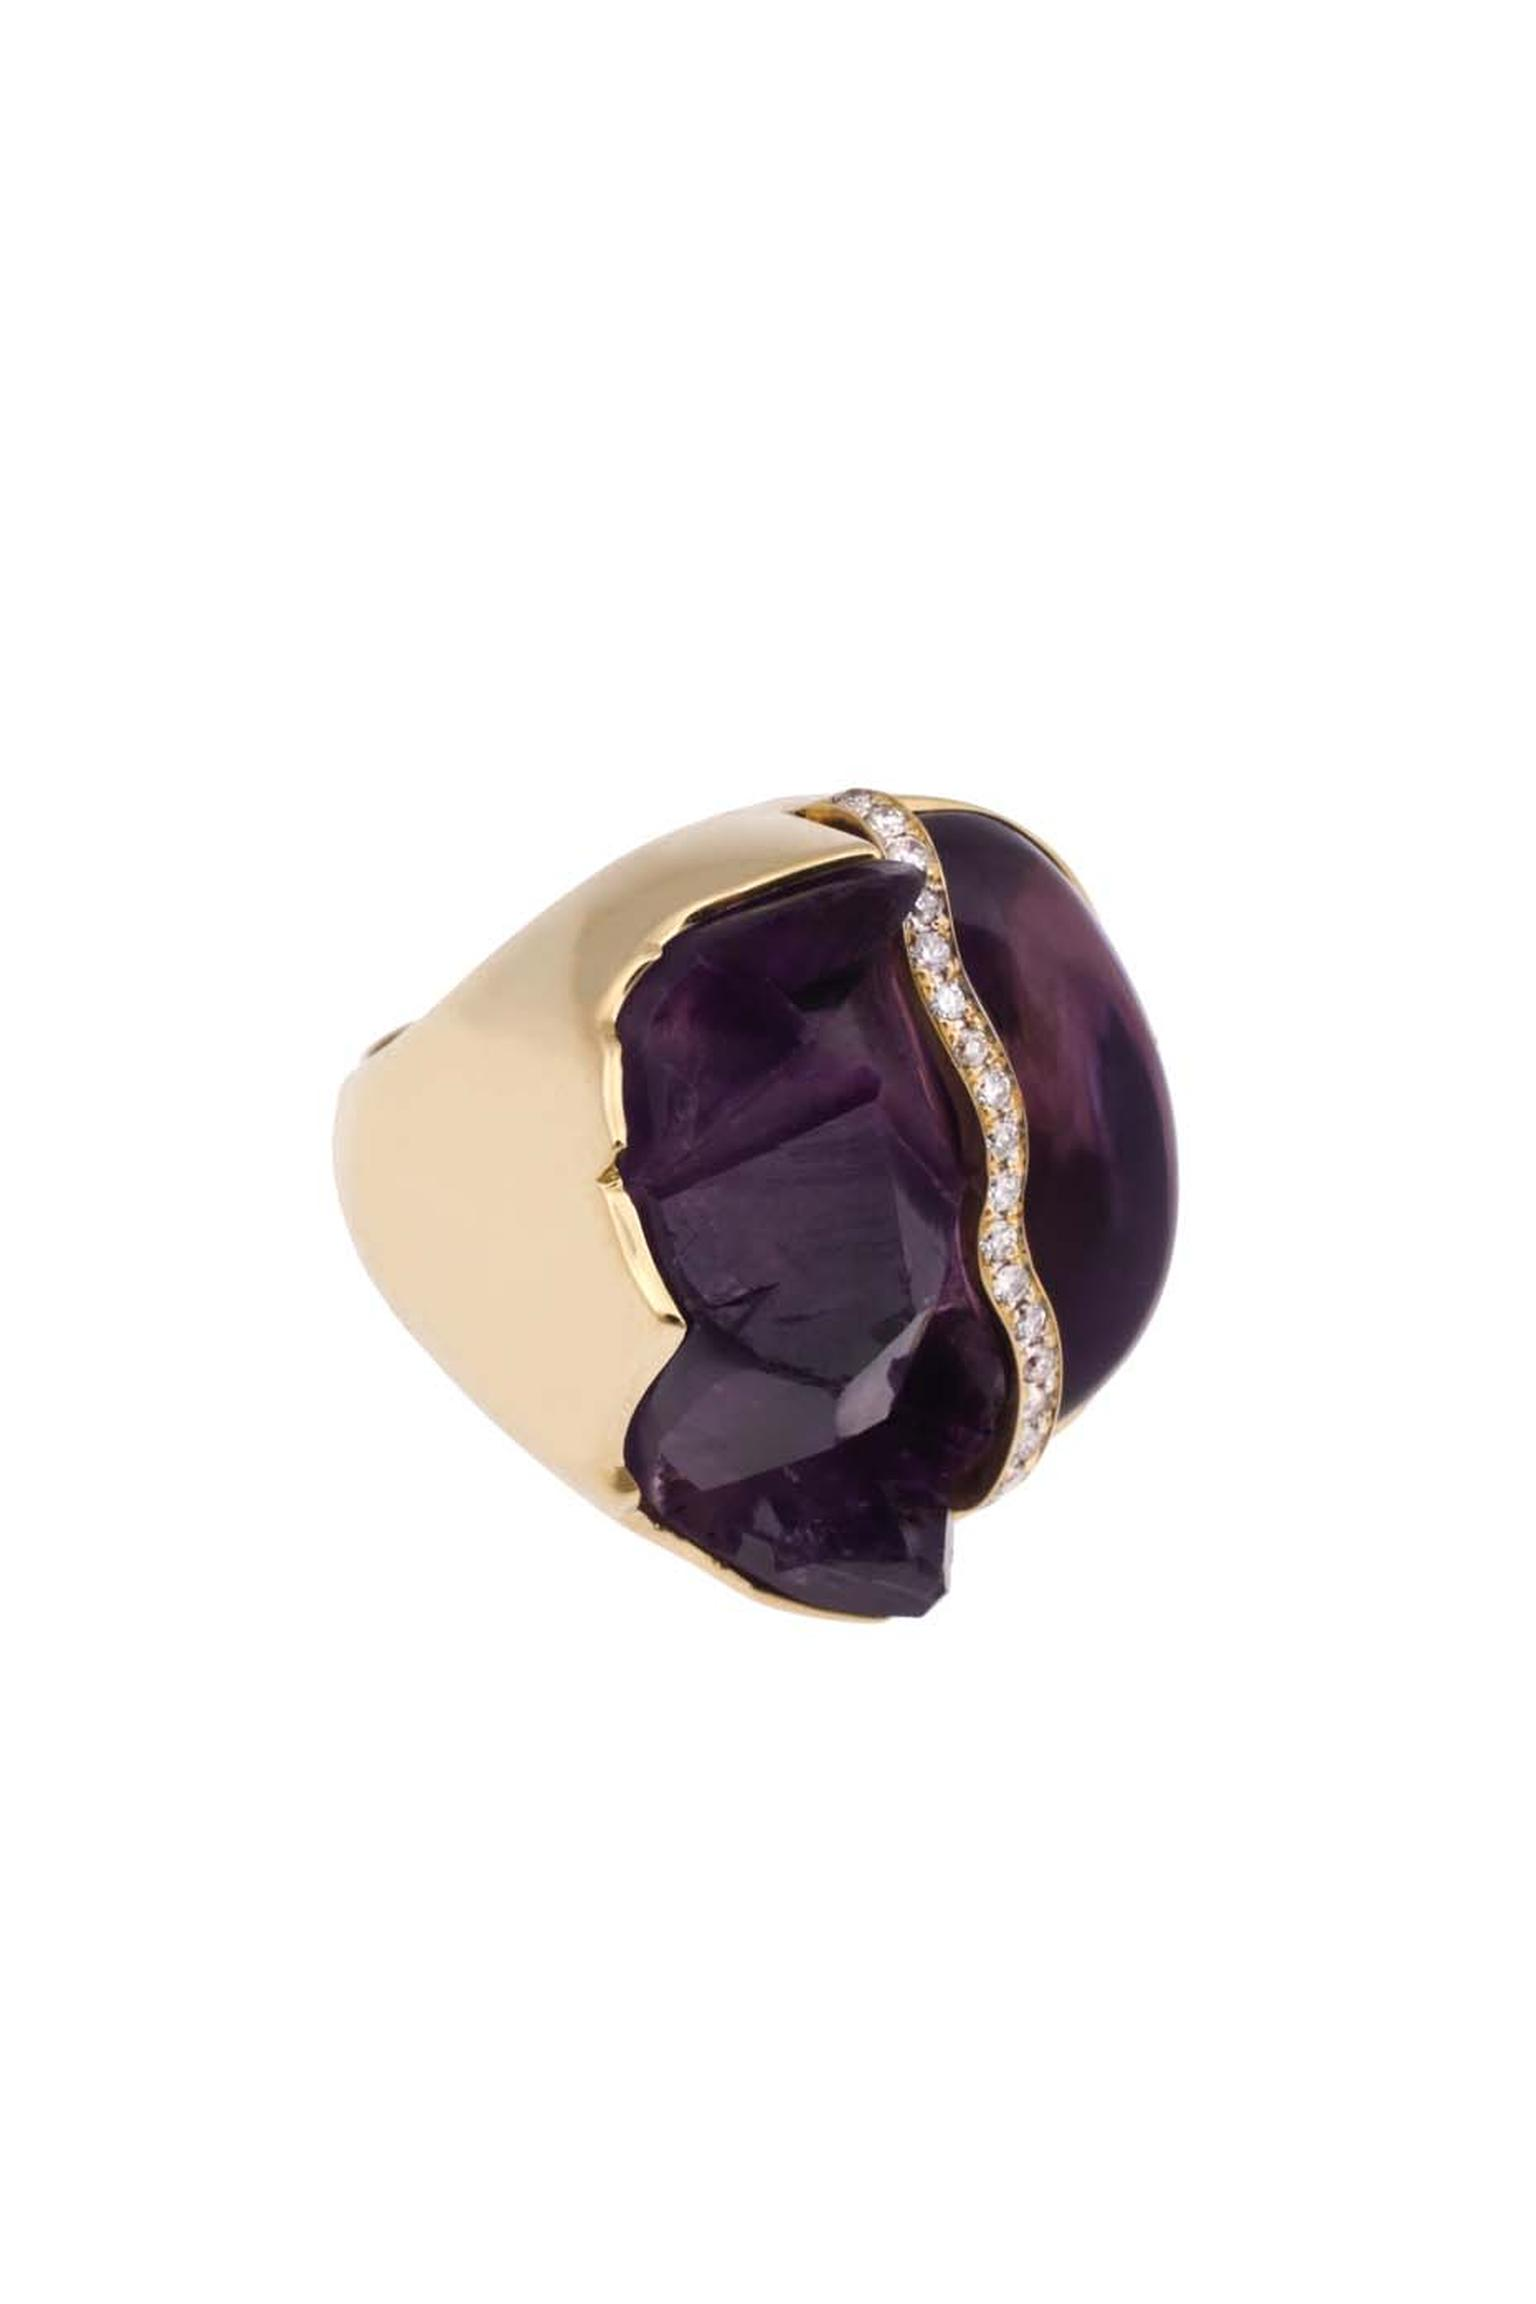 Kara Ross gold Petra split ring with raw and smooth amethyst divided by a line of diamonds